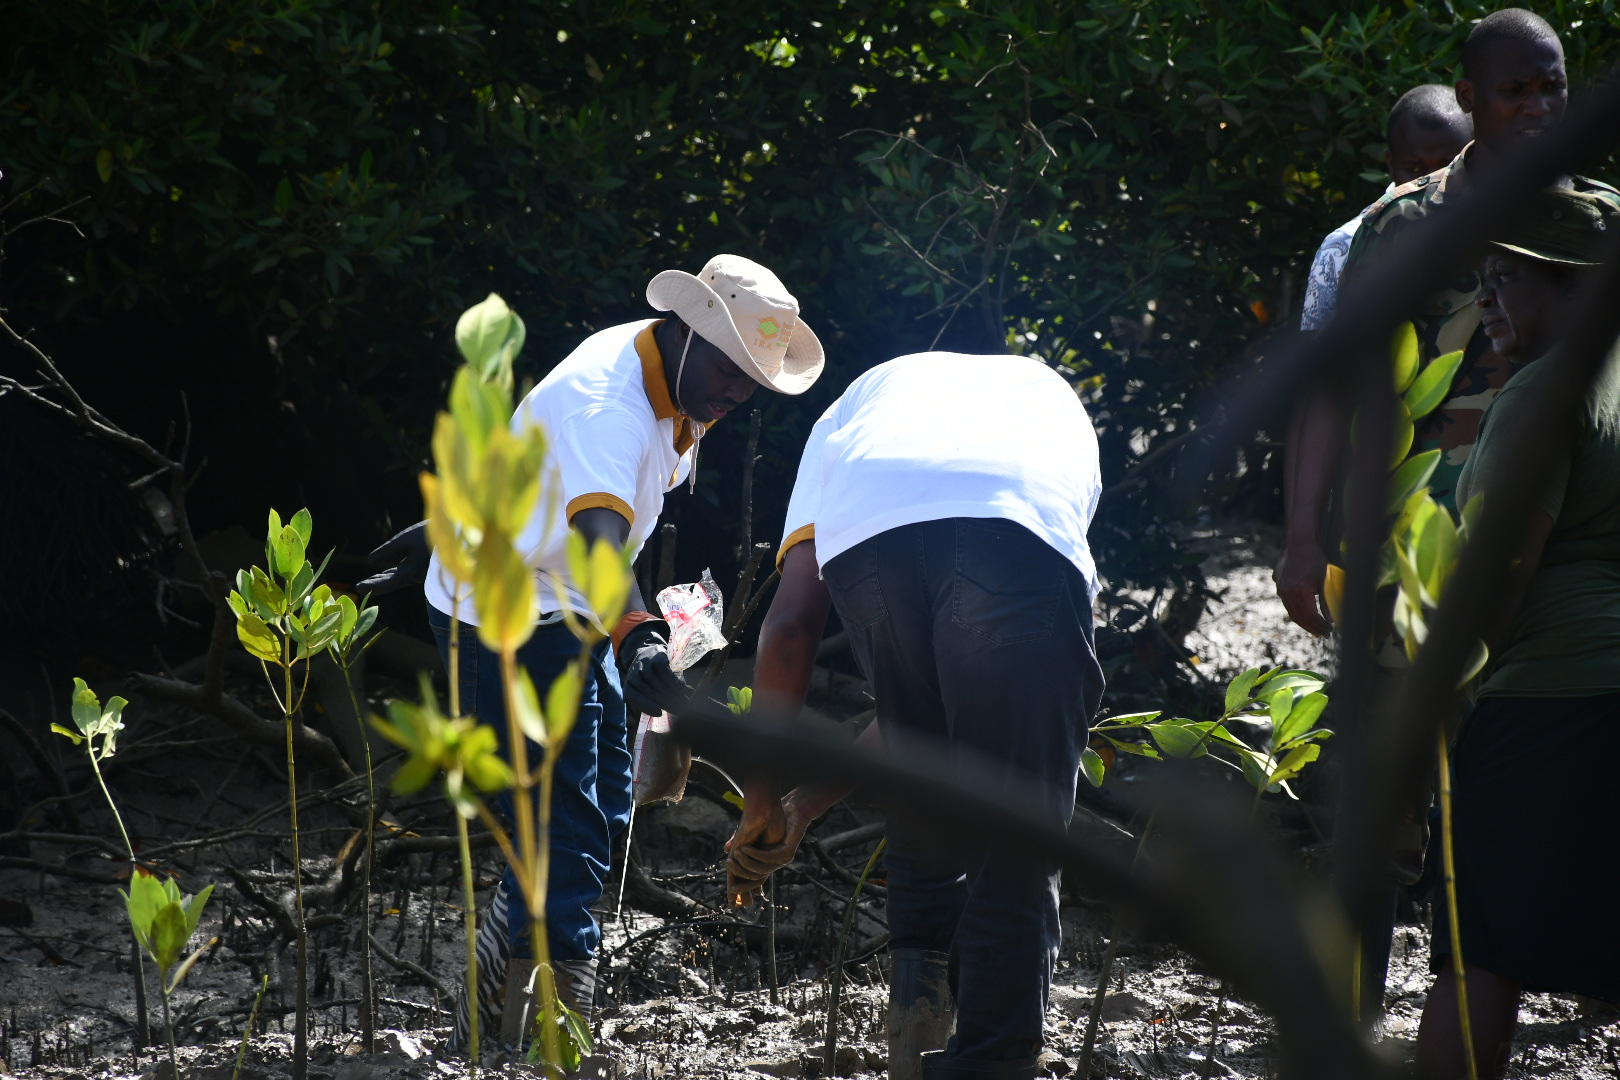 CEO, Mr. Godfrey Kiptum, planting trees at the Big Ship Conservation site, Mikindani, Tudor Creek Mangrove Forest, Mombasa County